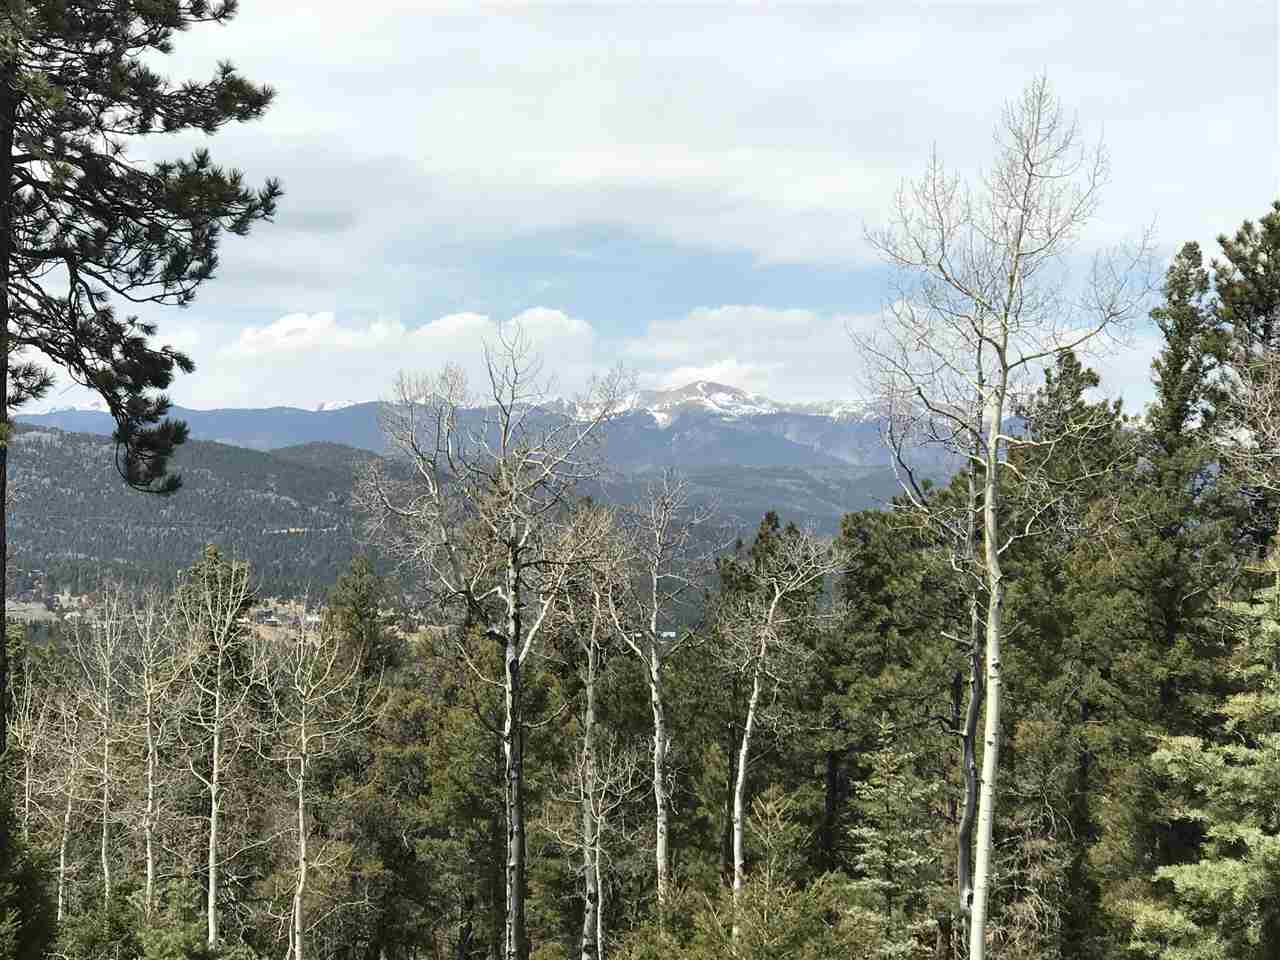 *PRICE REDUCED!  Views, views, views!  Beautiful Wheeler Peak view from a gently sloping cleared lot on cul-de-sac with mature trees.  Just up the road from Monte Verde Lake and close to town, golfing and skiing.